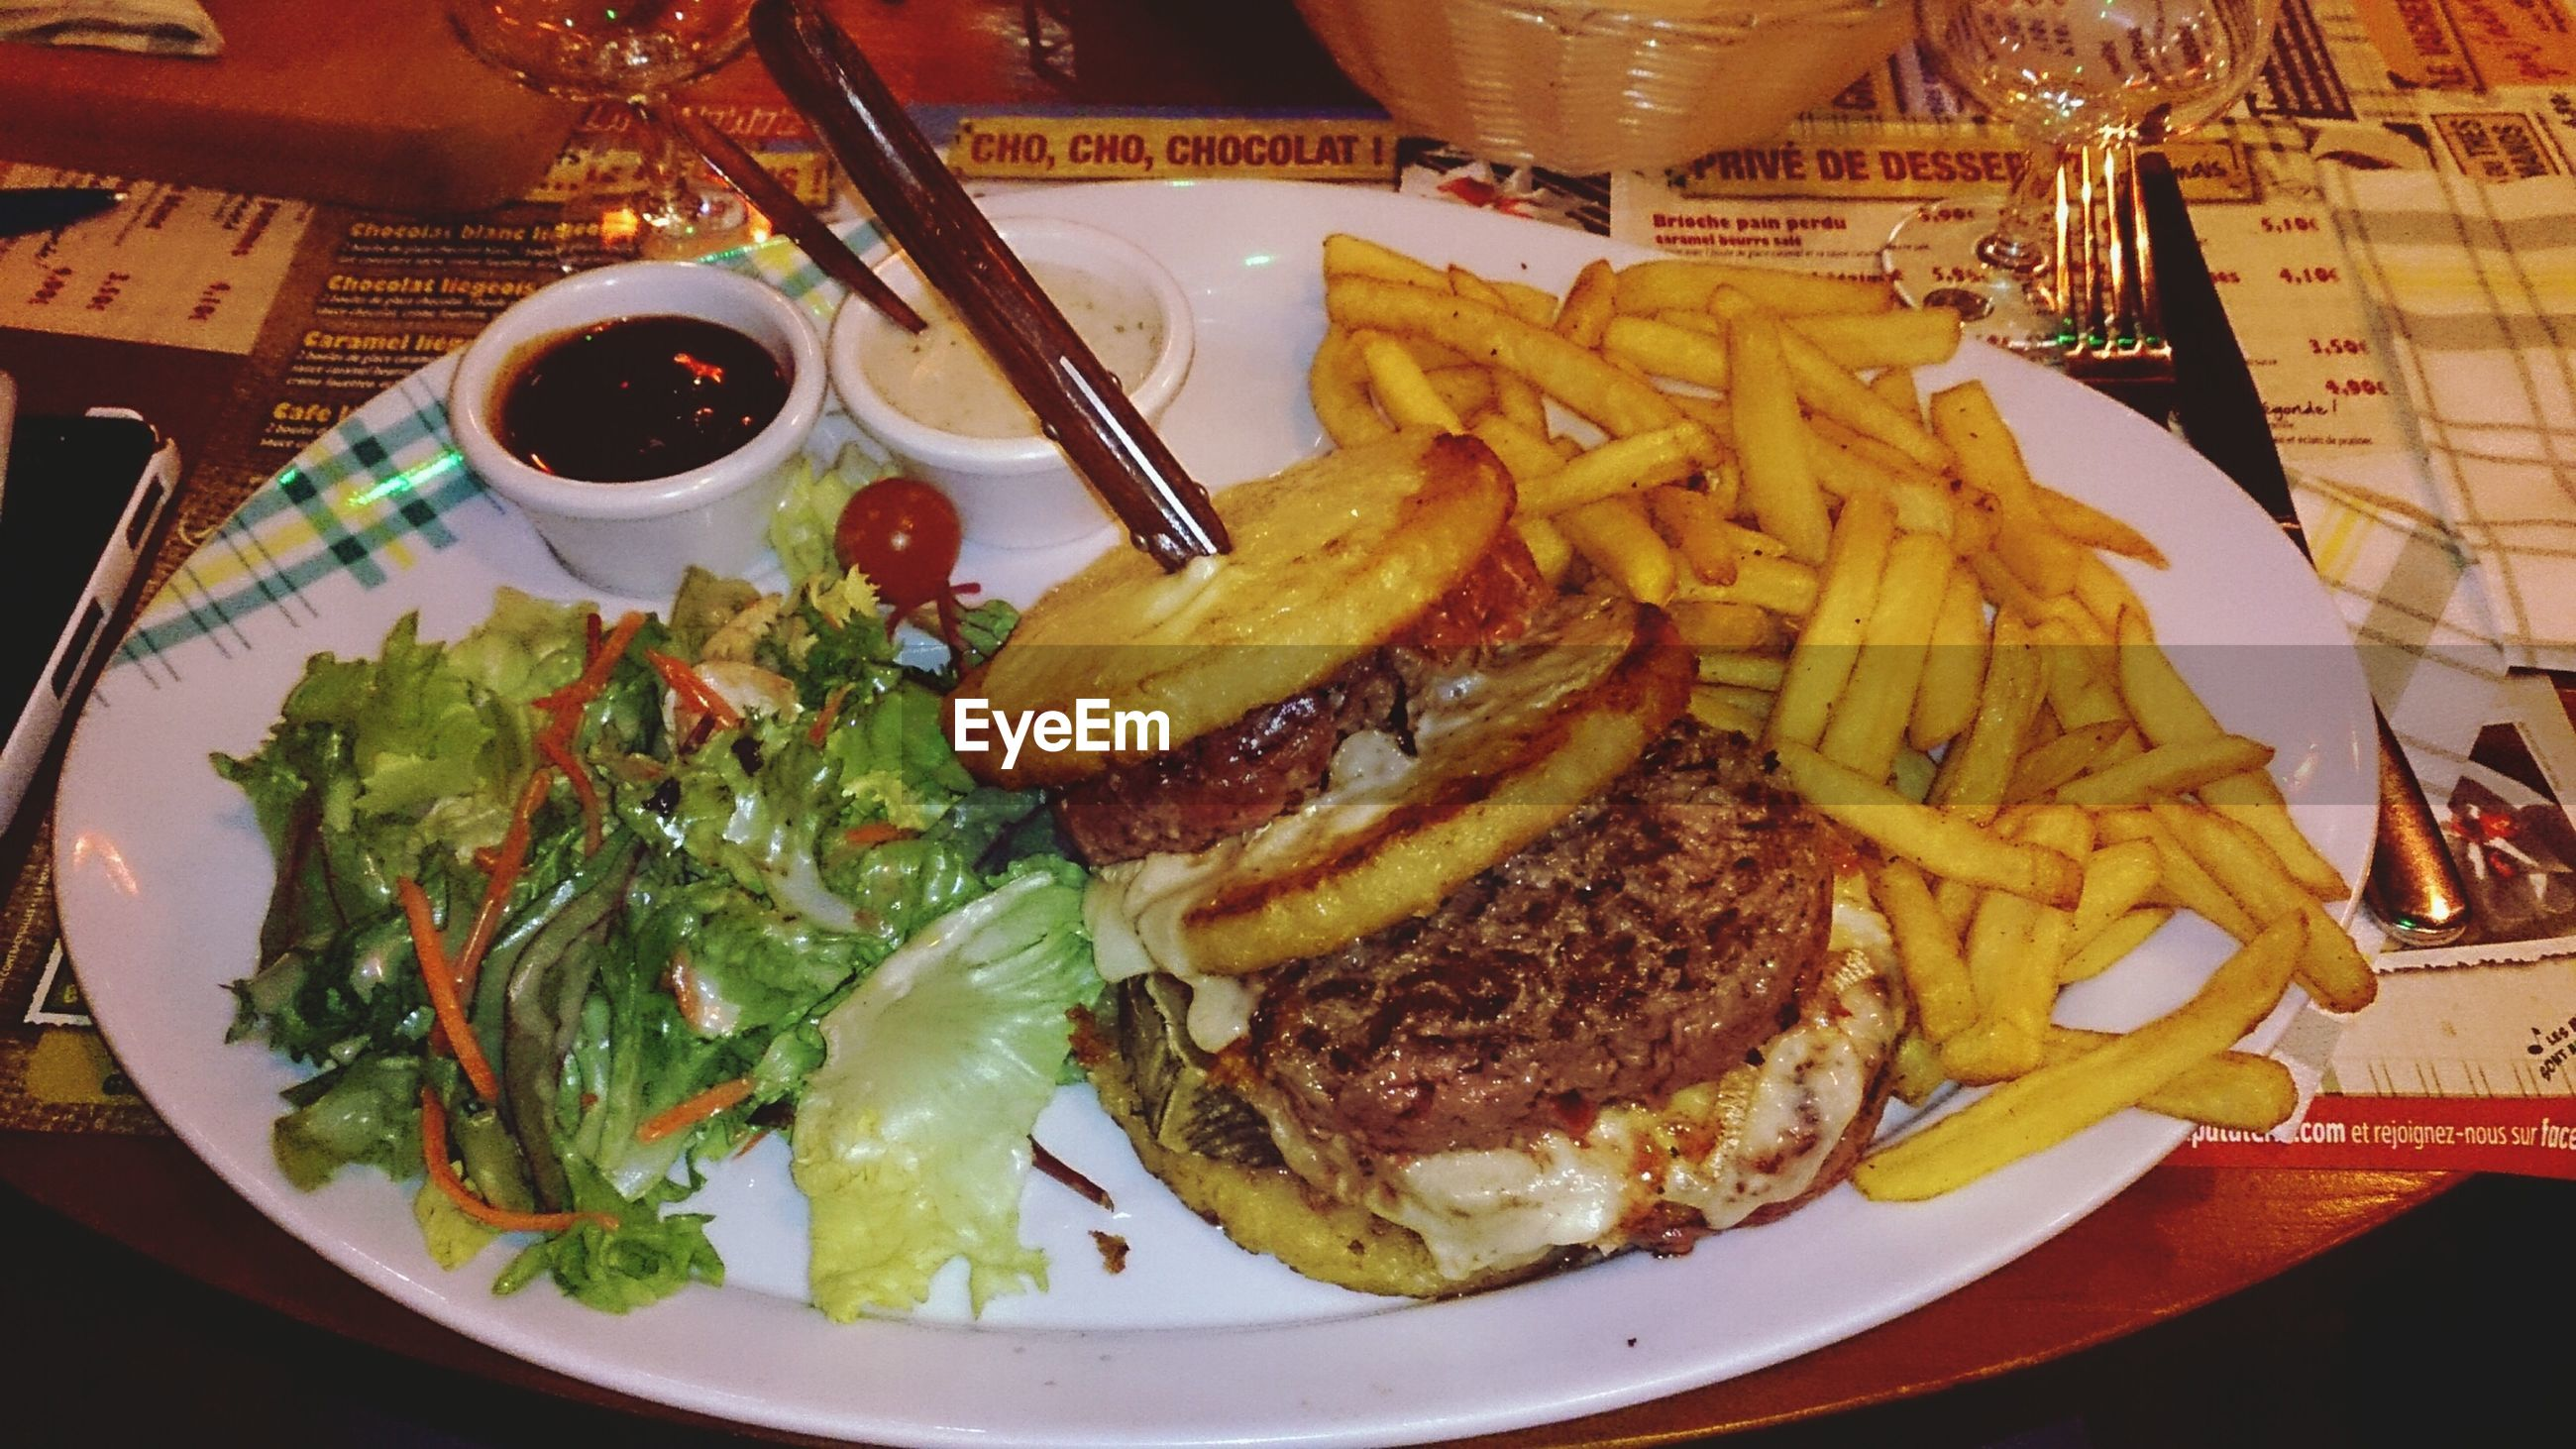 food and drink, food, ready-to-eat, plate, freshness, indoors, table, serving size, still life, high angle view, meal, indulgence, served, close-up, healthy eating, fork, meat, french fries, restaurant